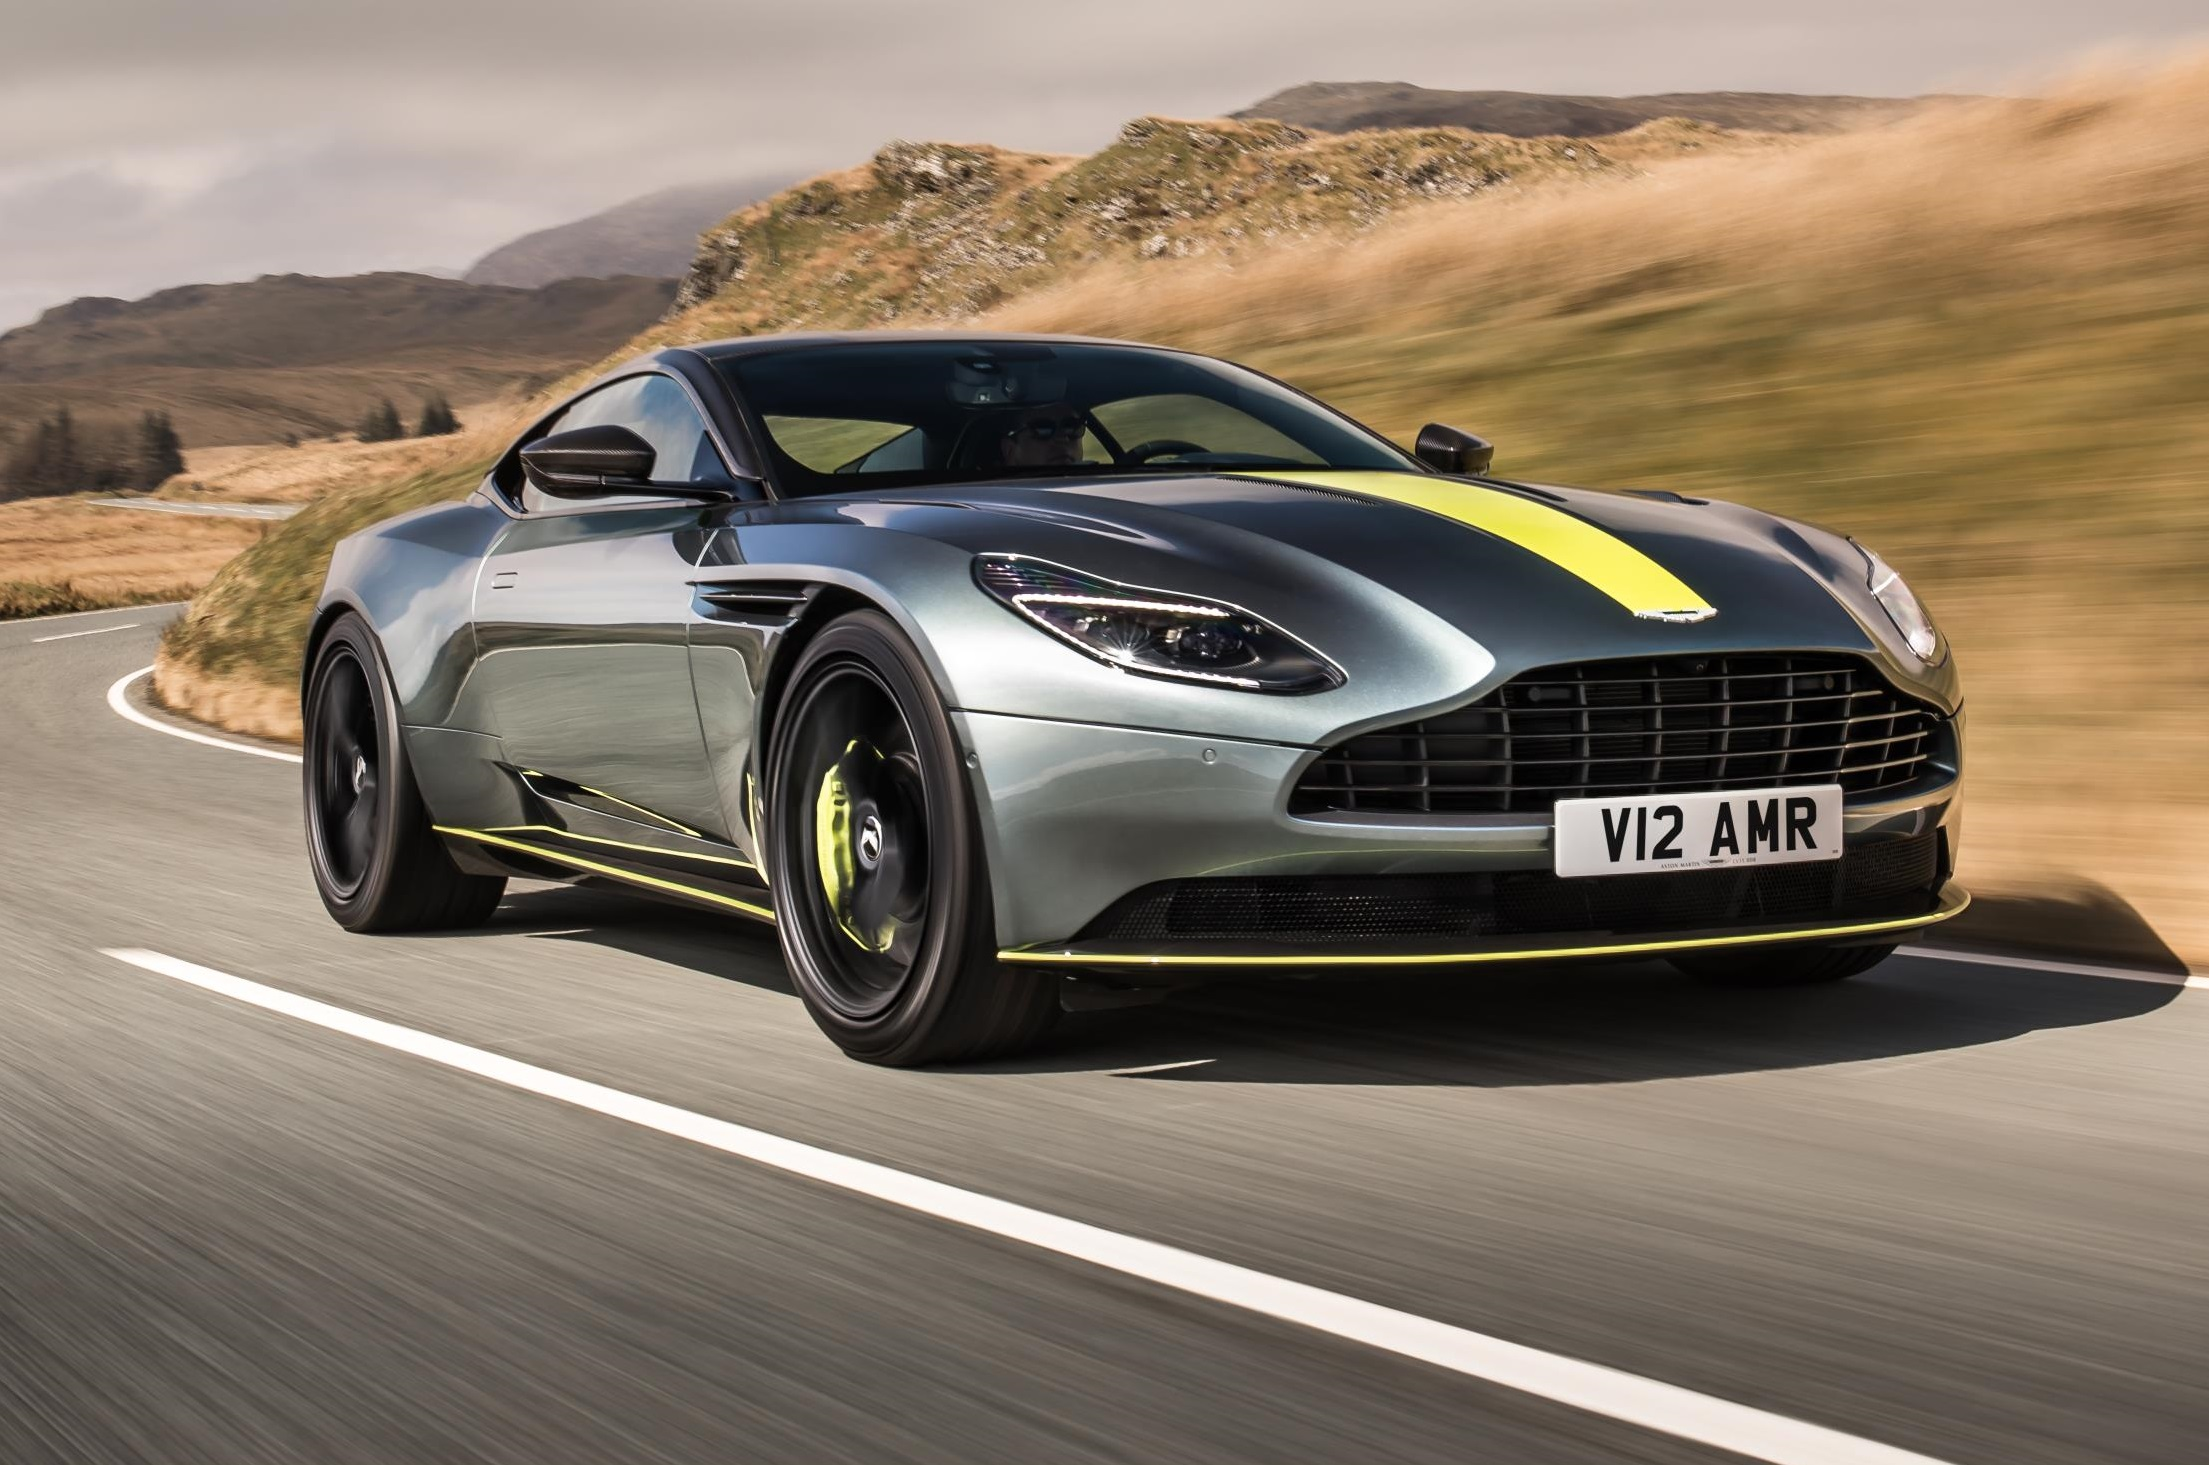 Aston Martin Offers >> 2019 Aston Martin DB11 AMR is the meaner new V12 flagship - PakWheels Blog